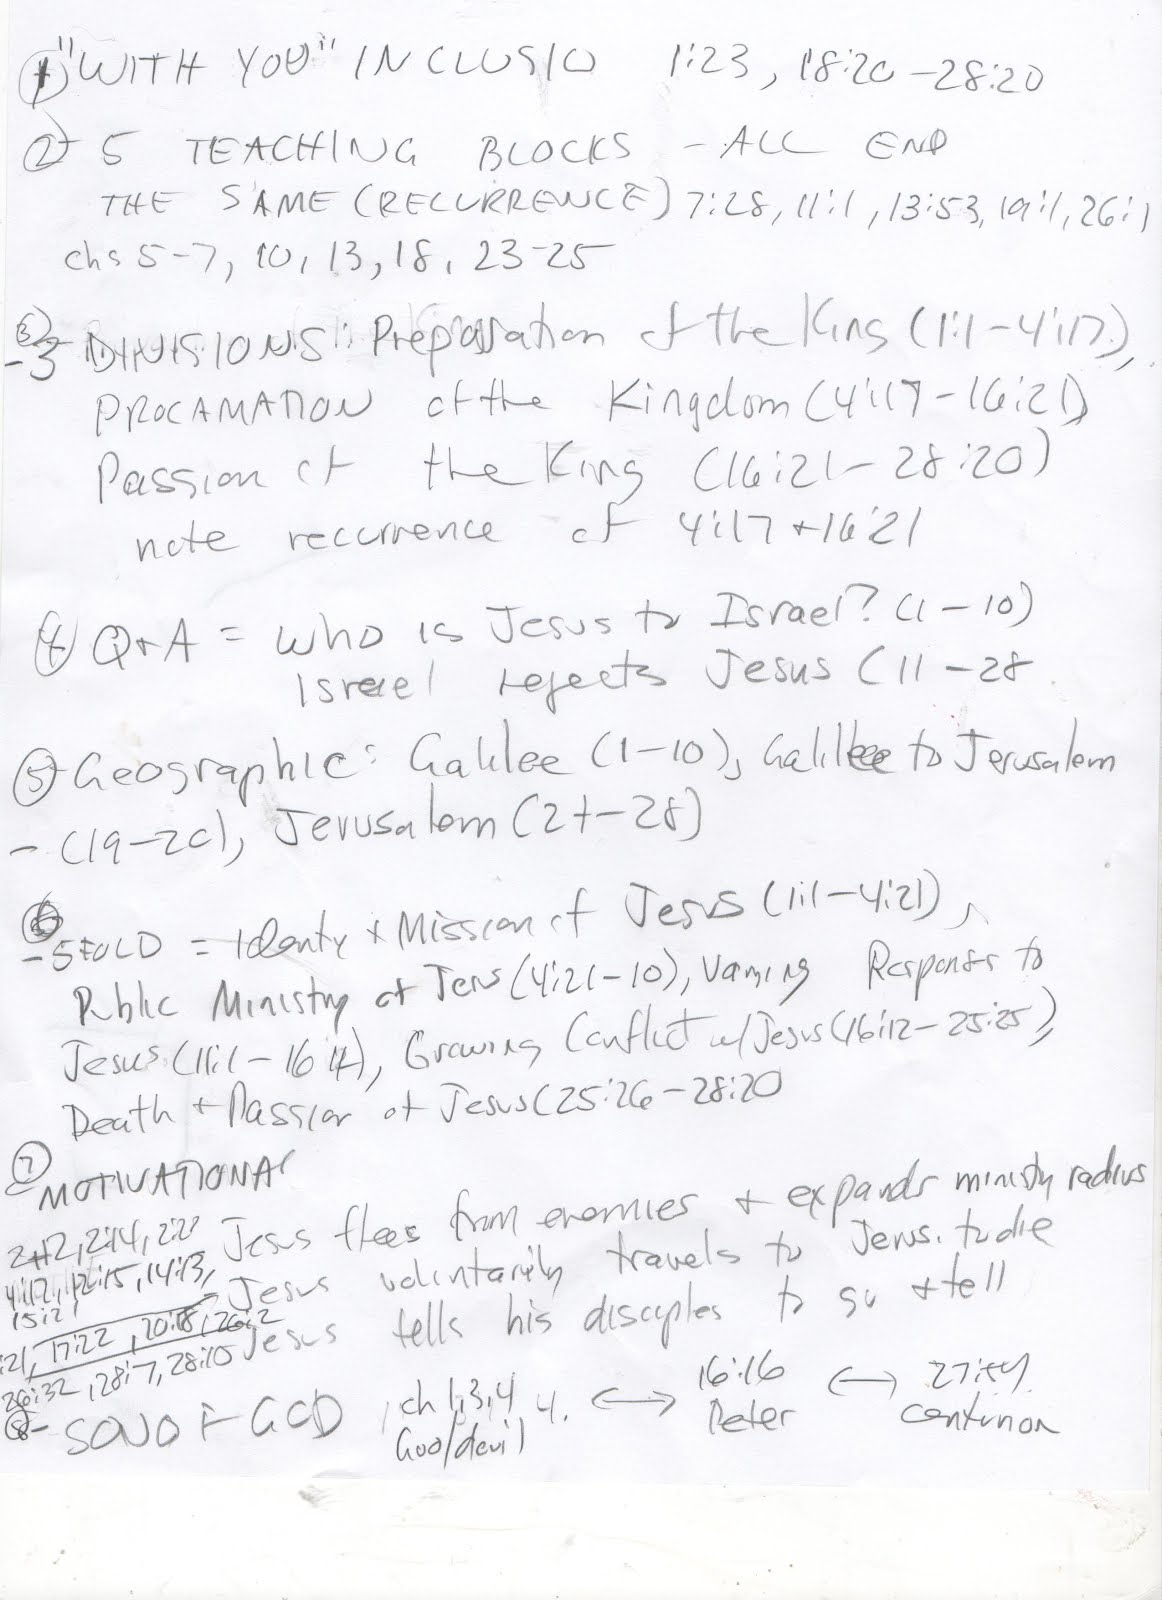 discuss the significance of the book Any belief that undermines, belittles, or weakens the bible doctrine of creation thereby undermines, belittles, or weakens faith in the existence and nature of god and the bible as god's word this is true, not just of evolution, but of any view that weakens the doctrine of creation.